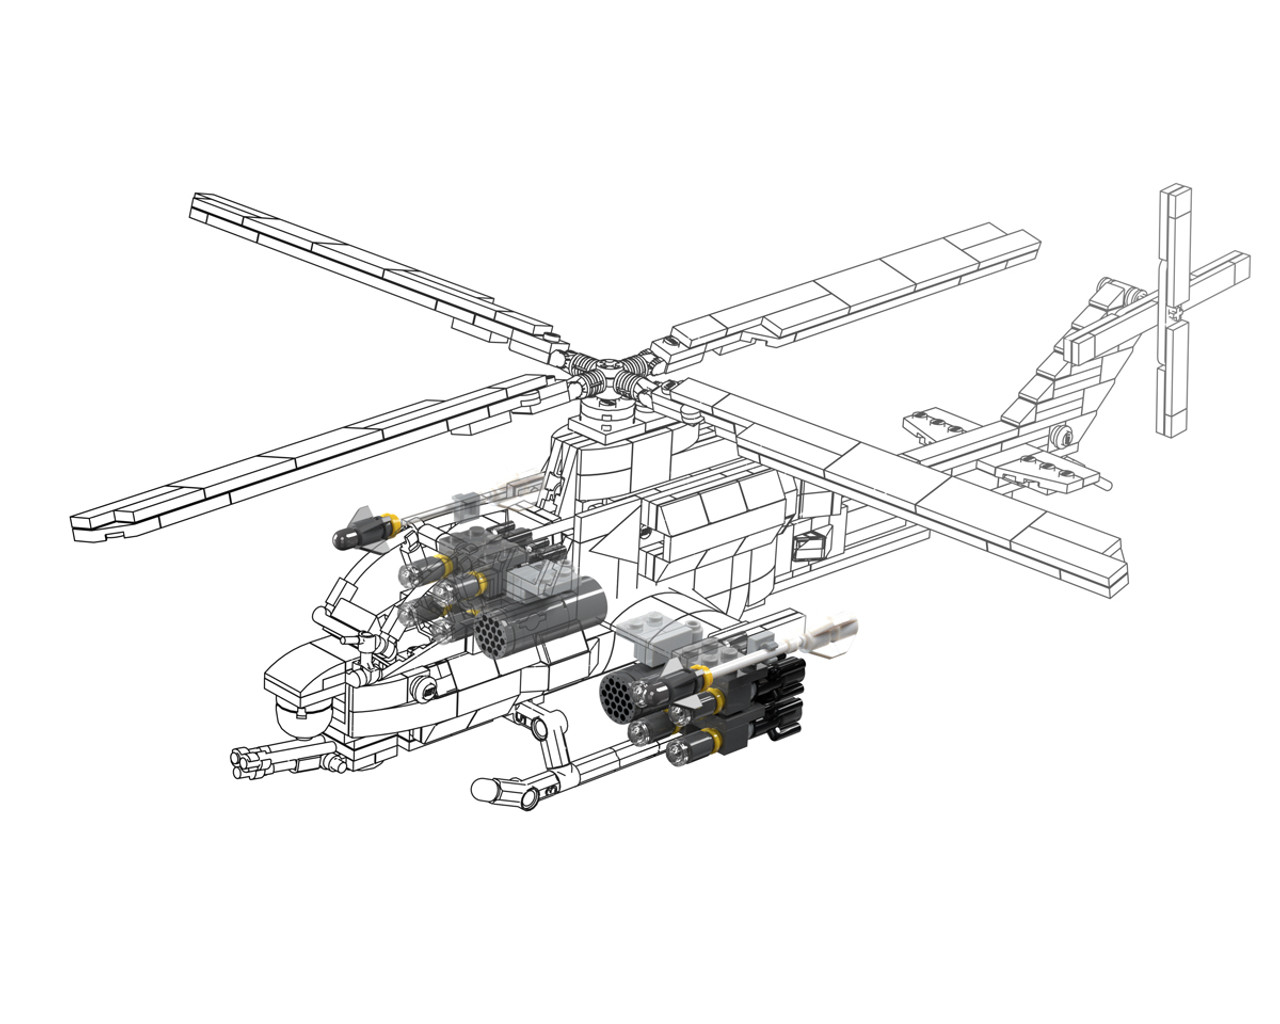 Viper Load-Out - Weapons Pack for AH-1Z Viper